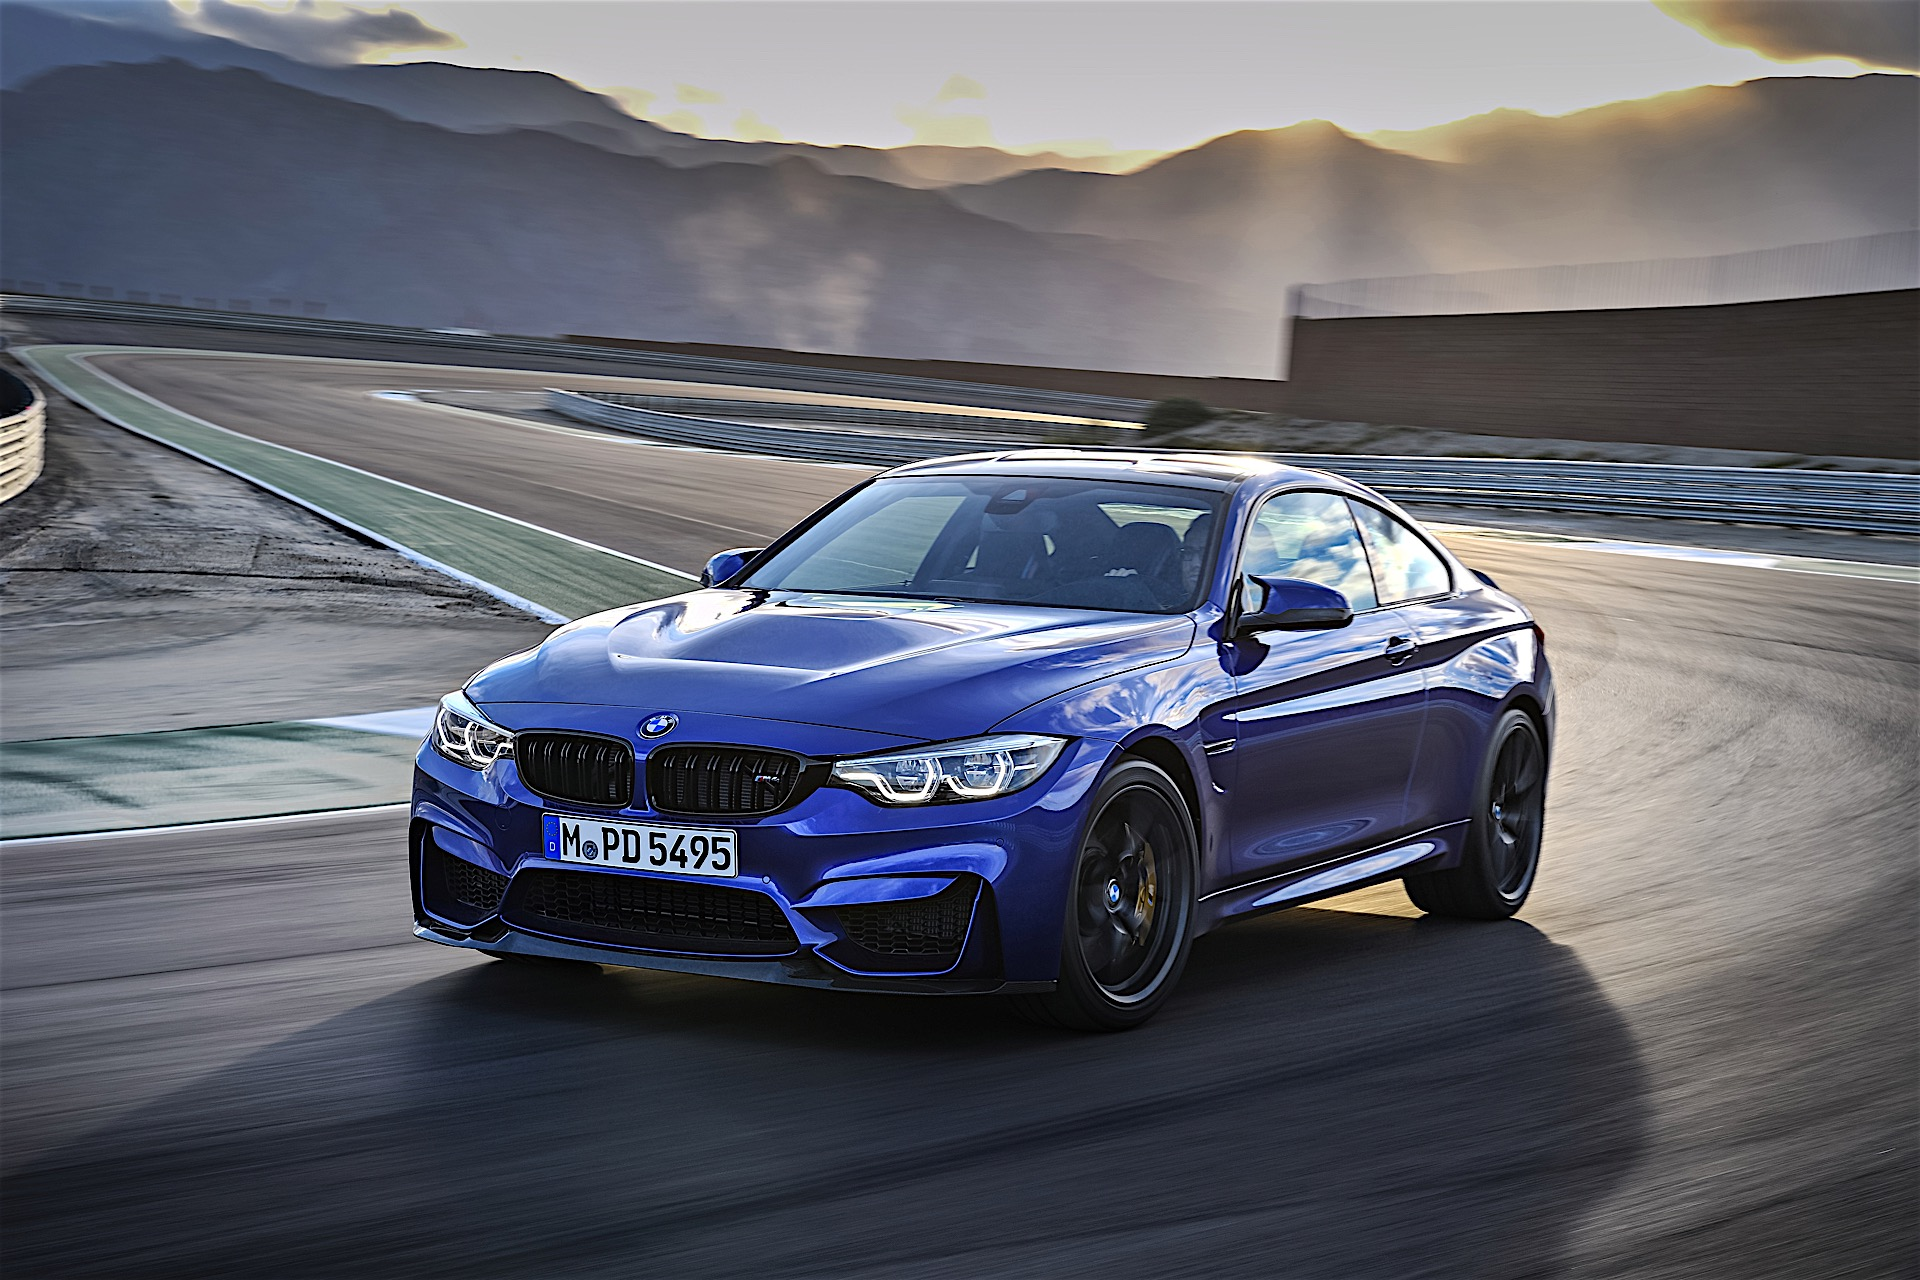 Bmw M4 Cs Revealed With 460 Hp And A Nurburgring Time Of 738